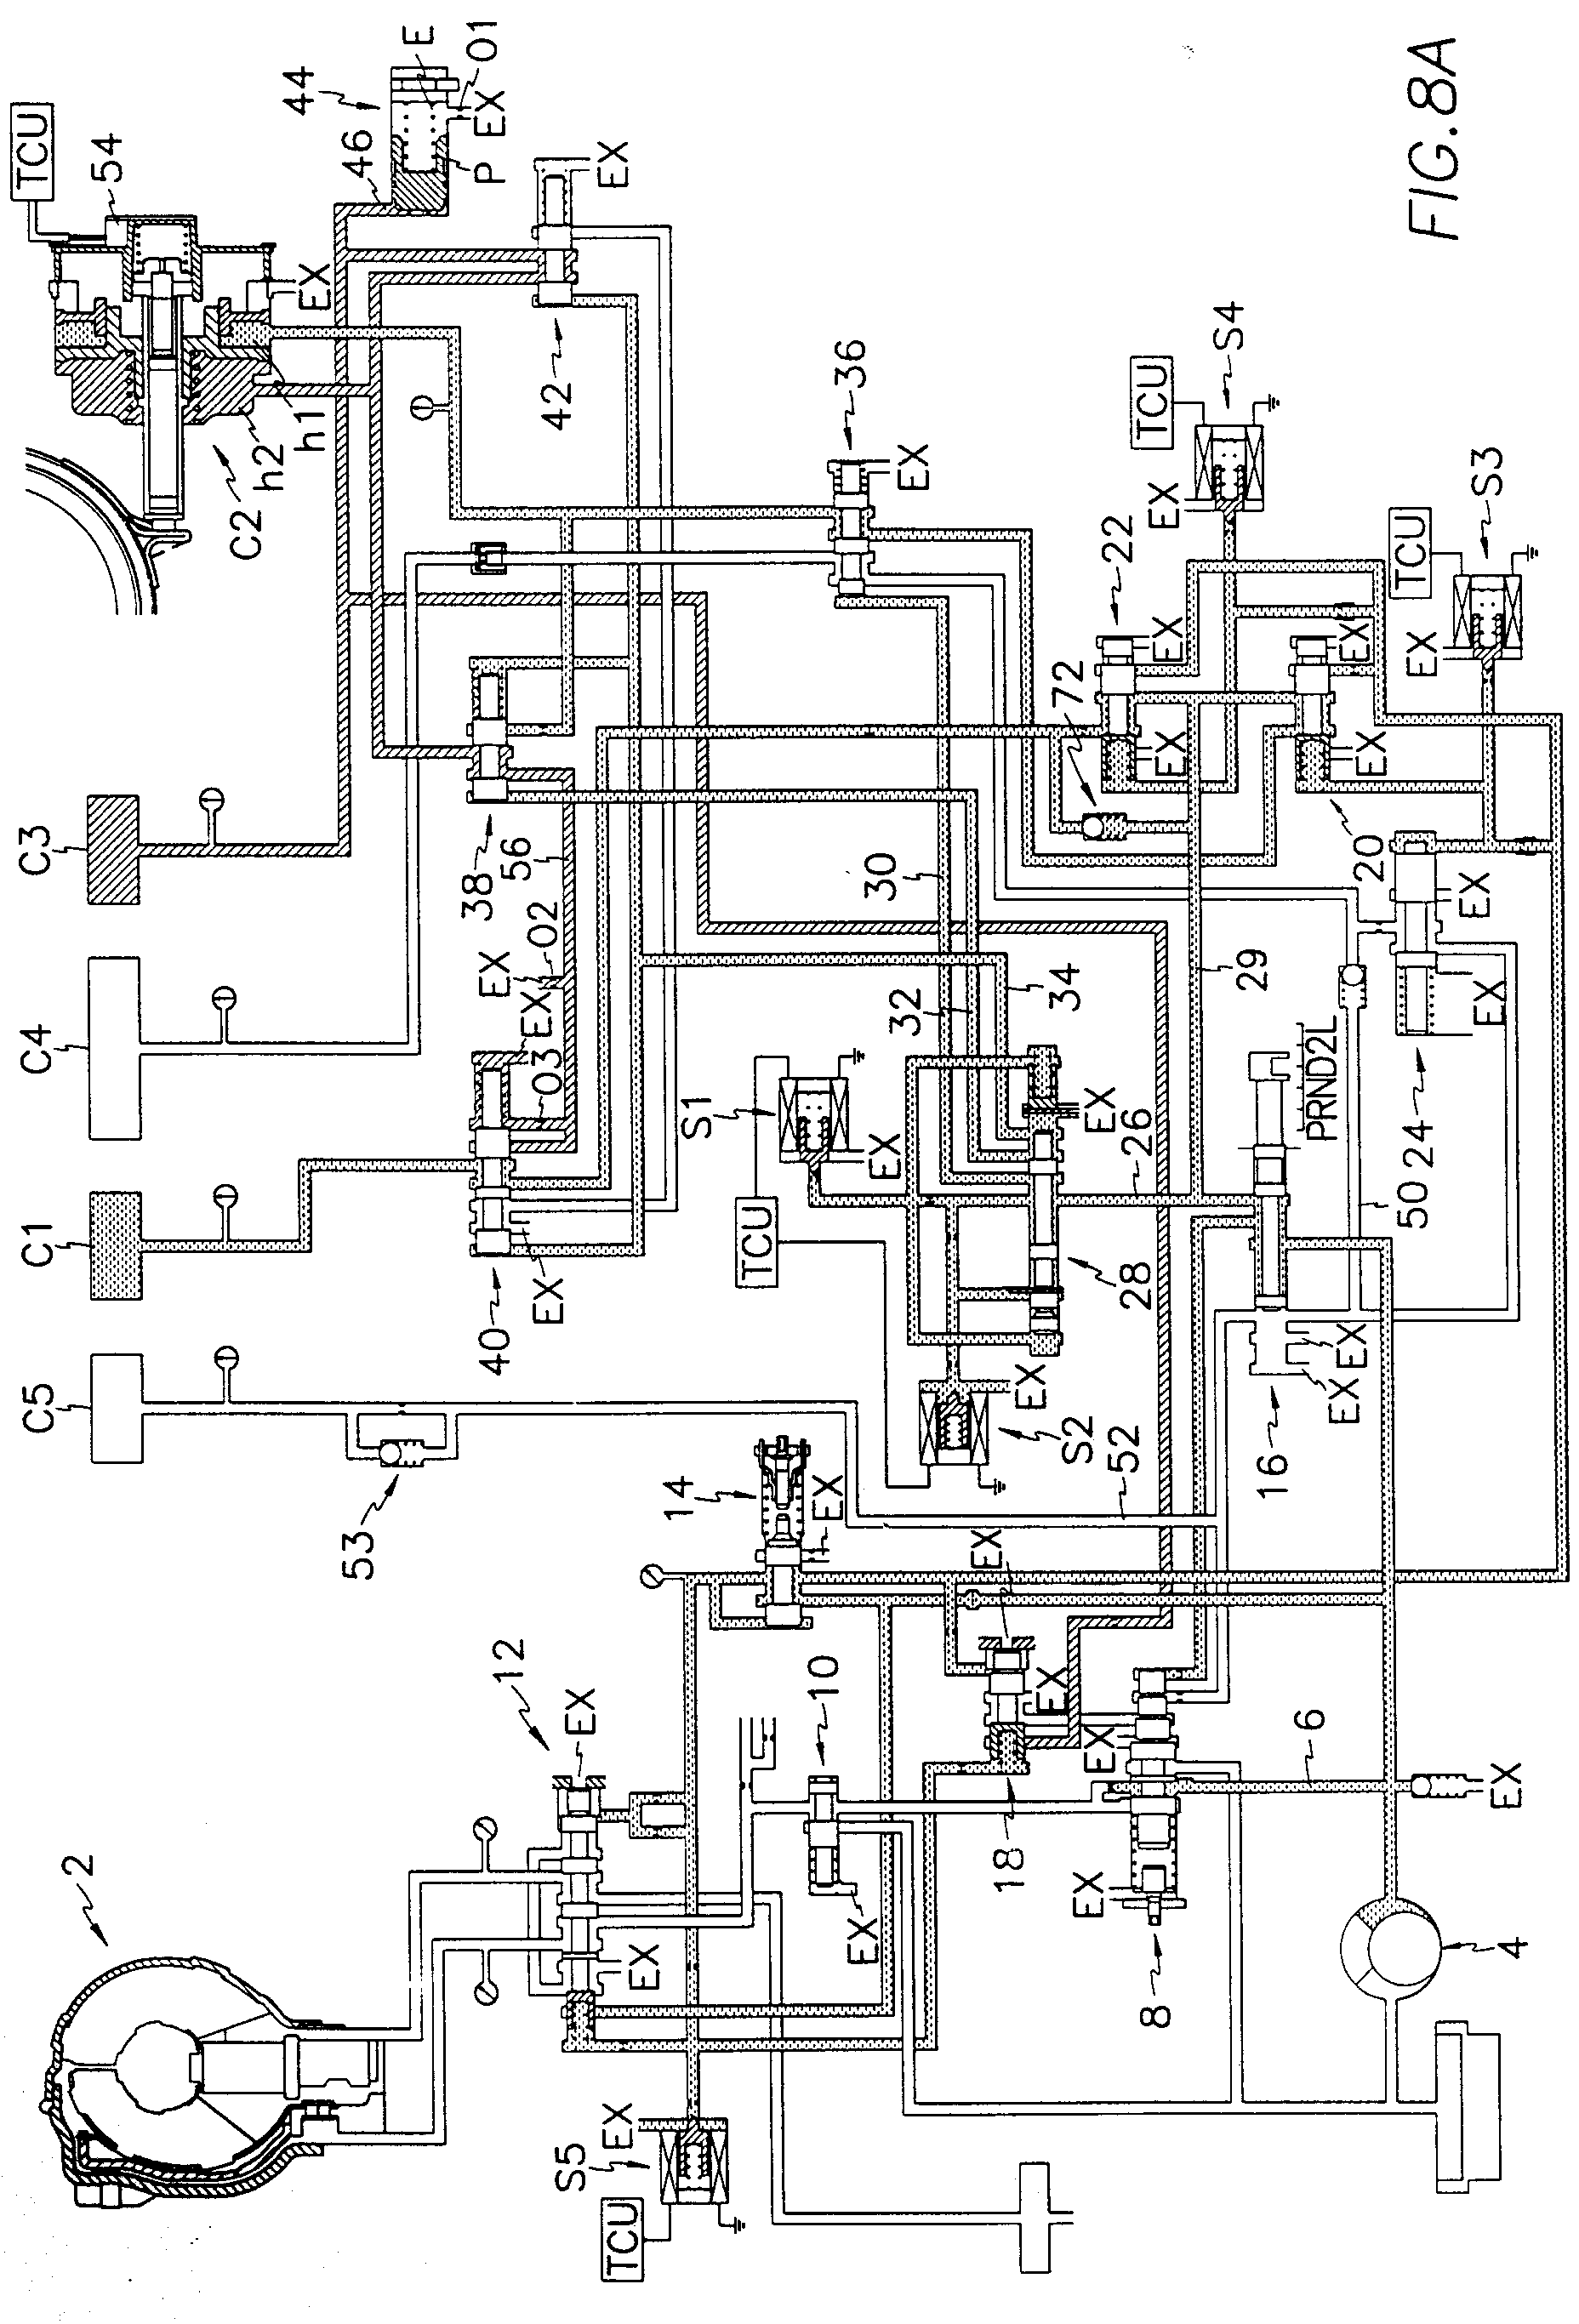 2006 International 7400 Fuse Box Diagram Real Wiring For Ford Explorer S1900 Focus